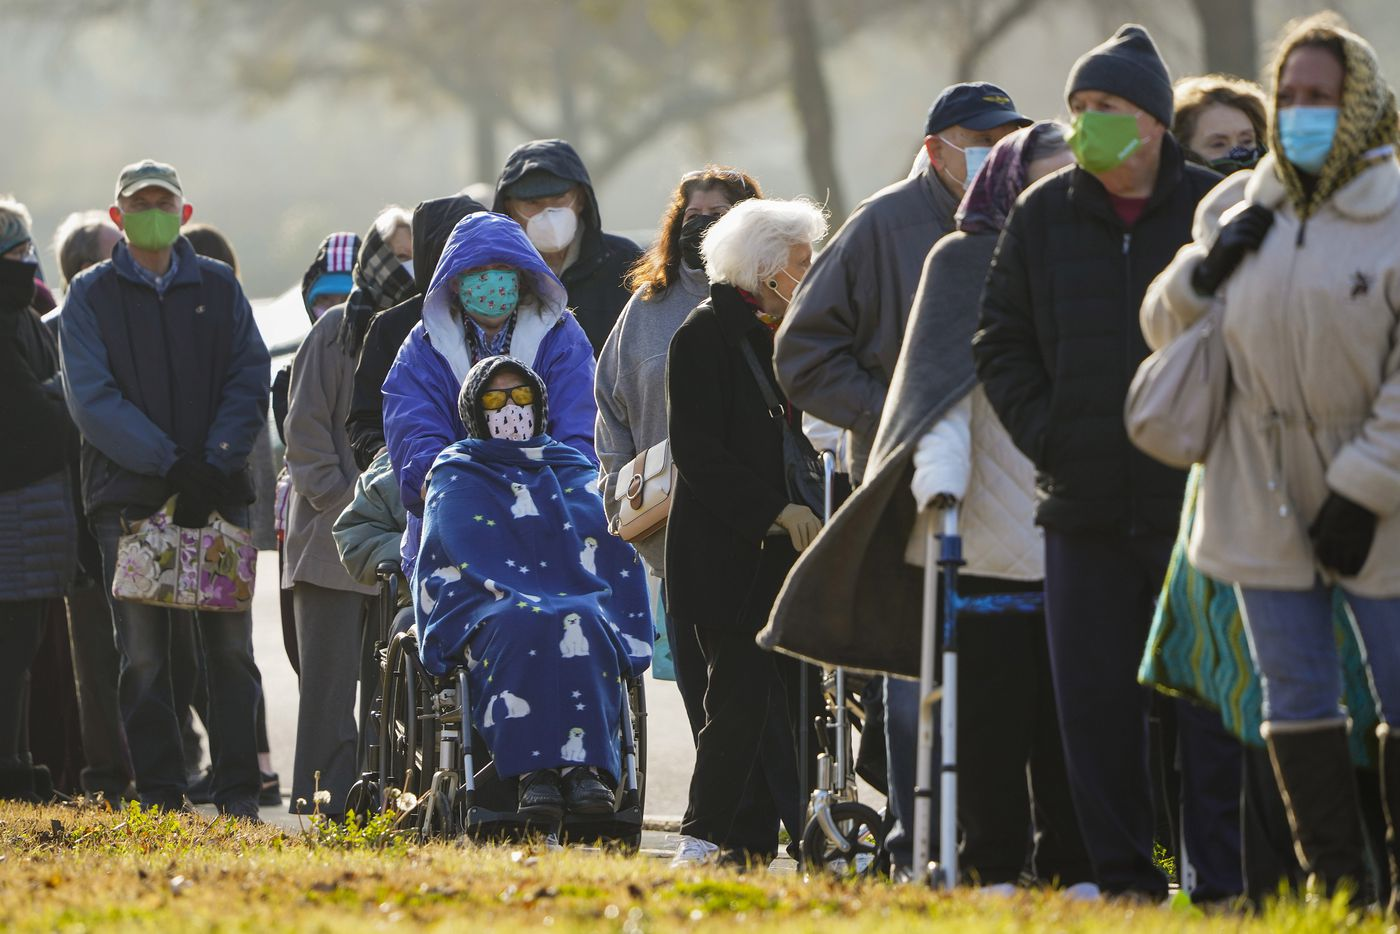 On Monday, January 11, 2021, people lined up at Dallas Fair Park to receive the COVID-19 vaccine. It was a cold morning. Dallas County launched its first